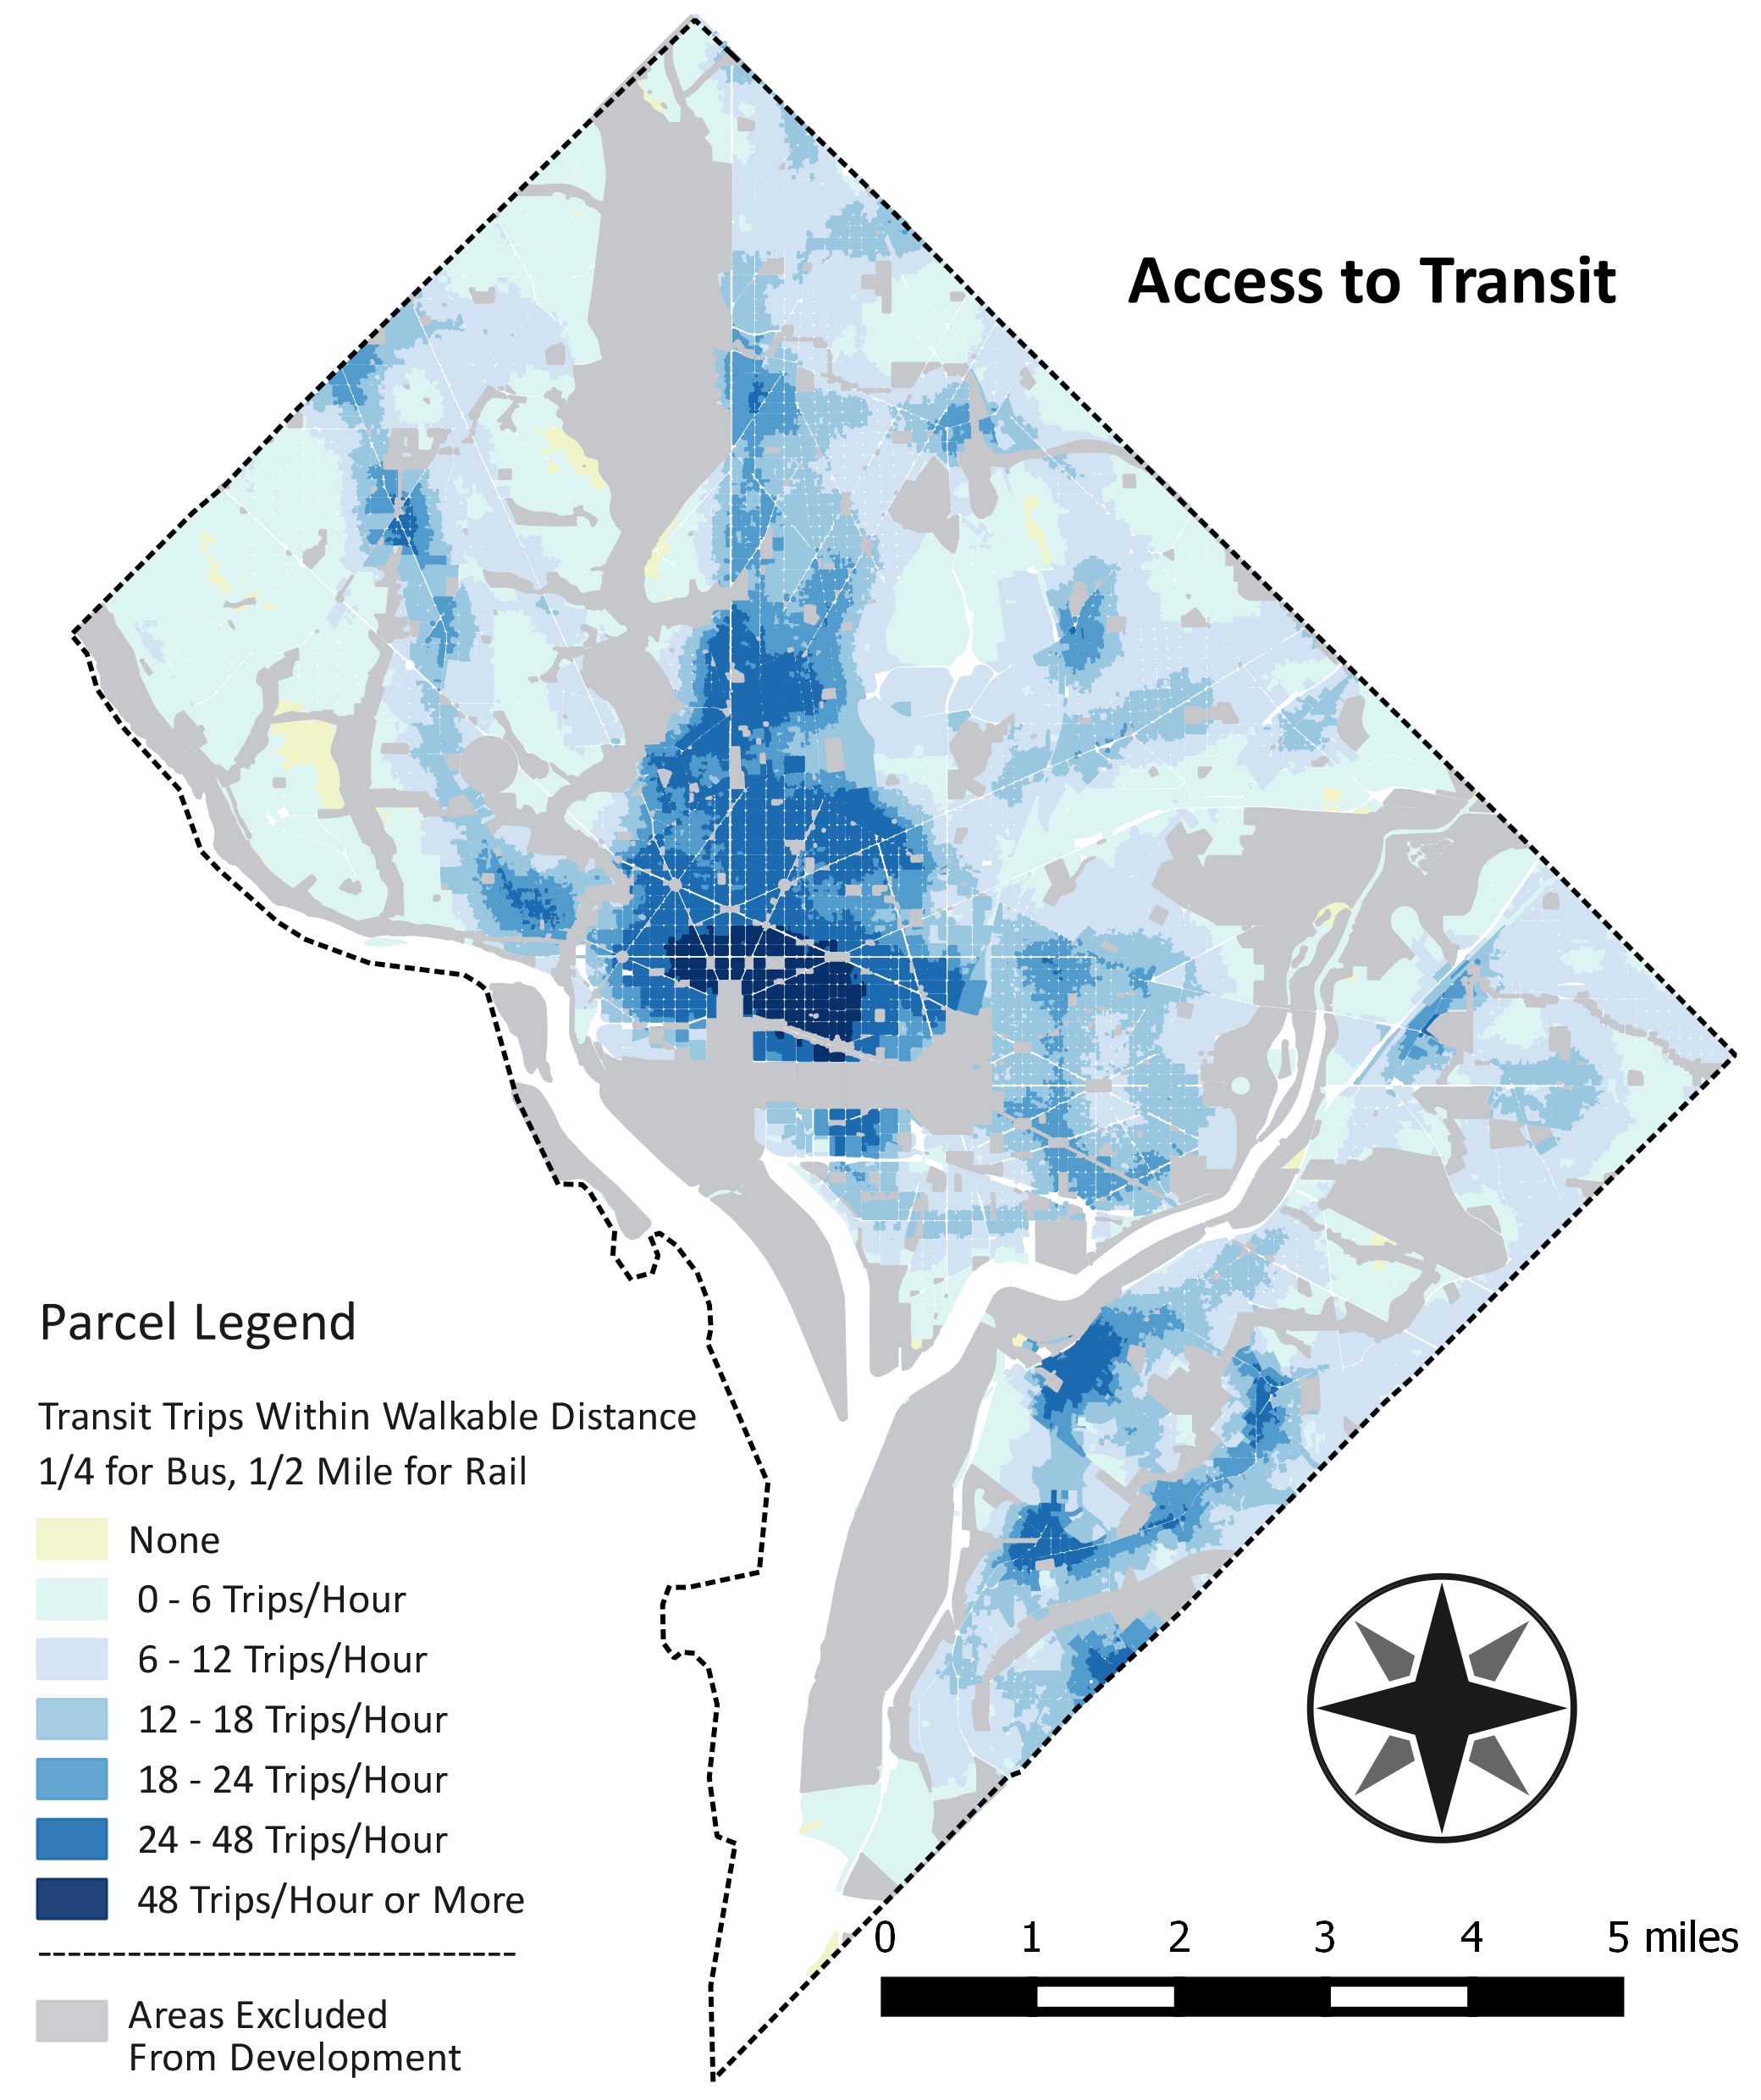 Map of Access to Transit